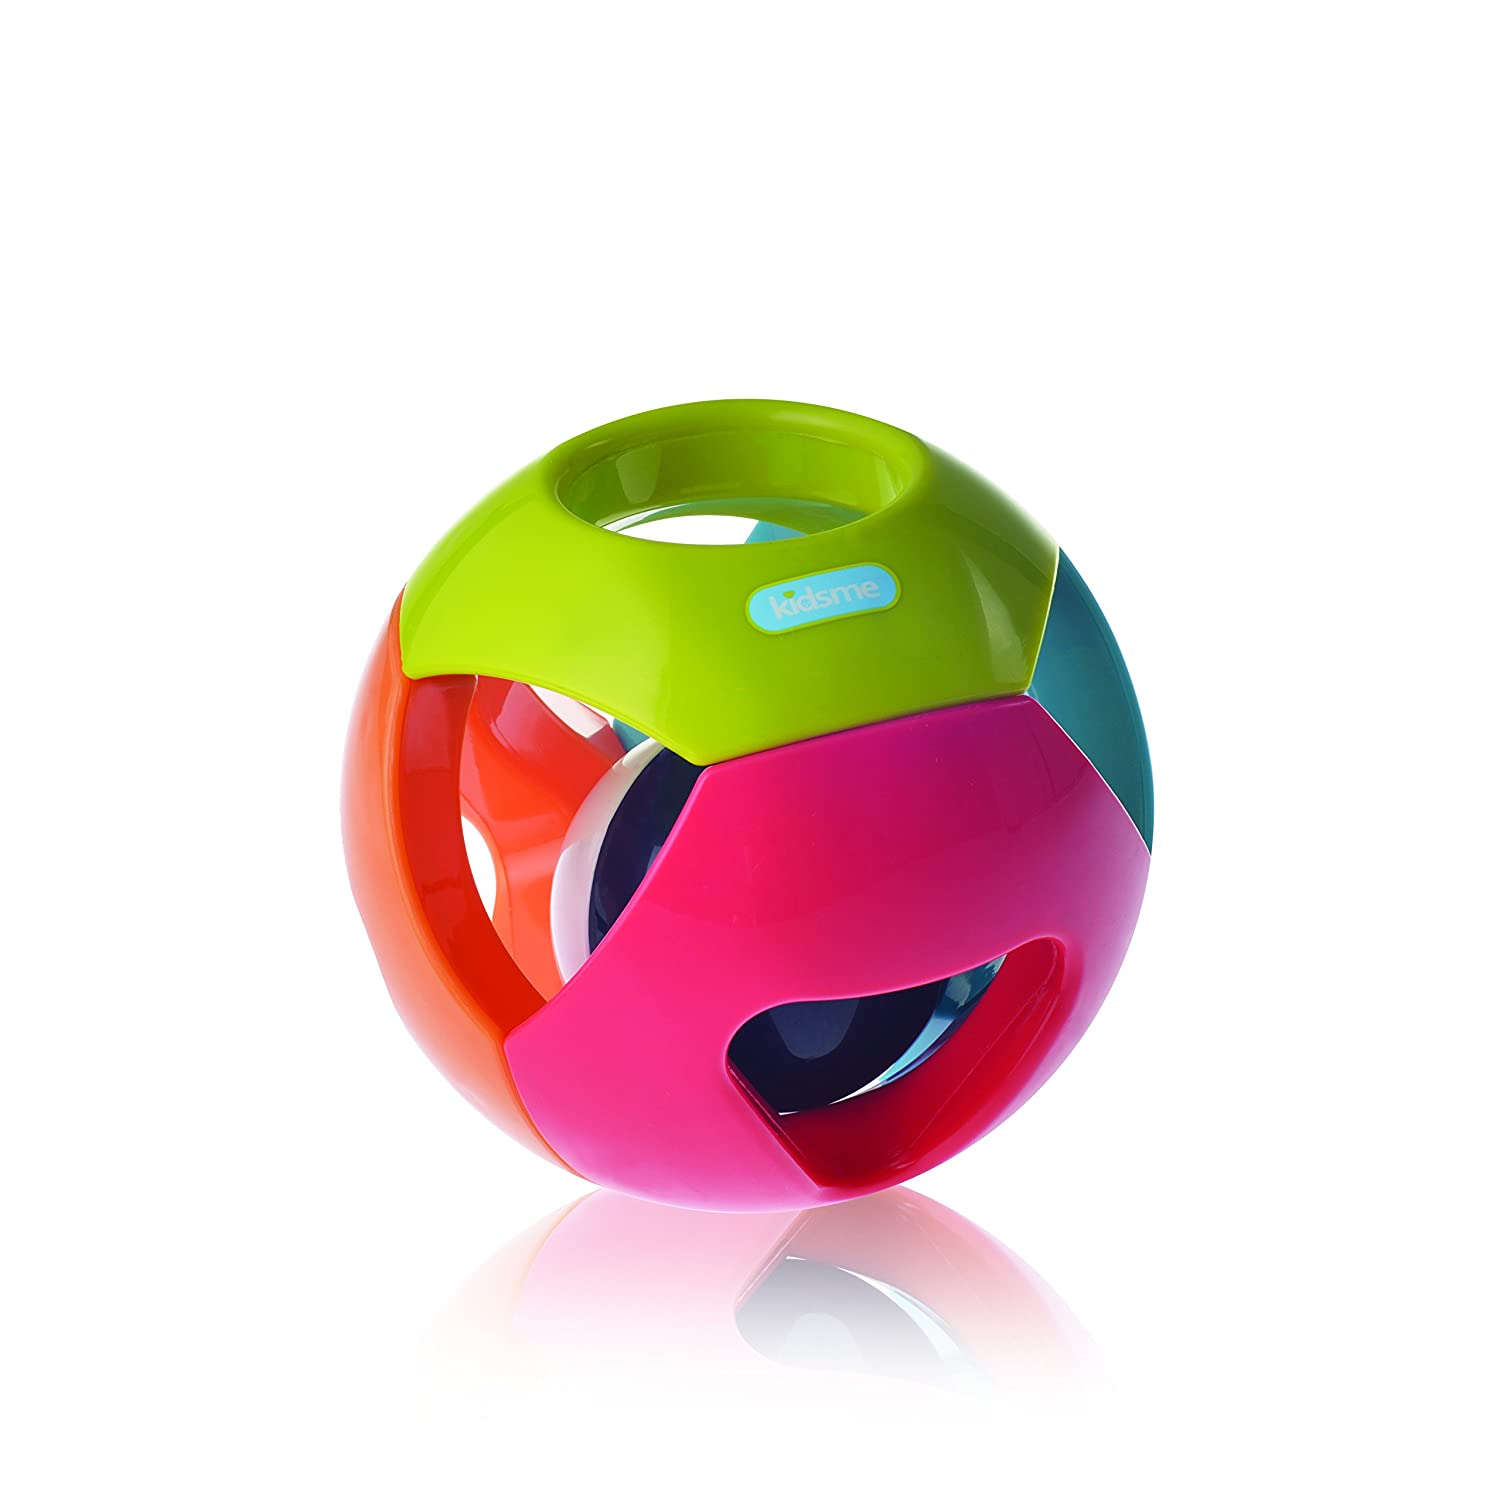 Kidsme Play and Learn Ball sensory toy for babies and toddlers Magformers 9266